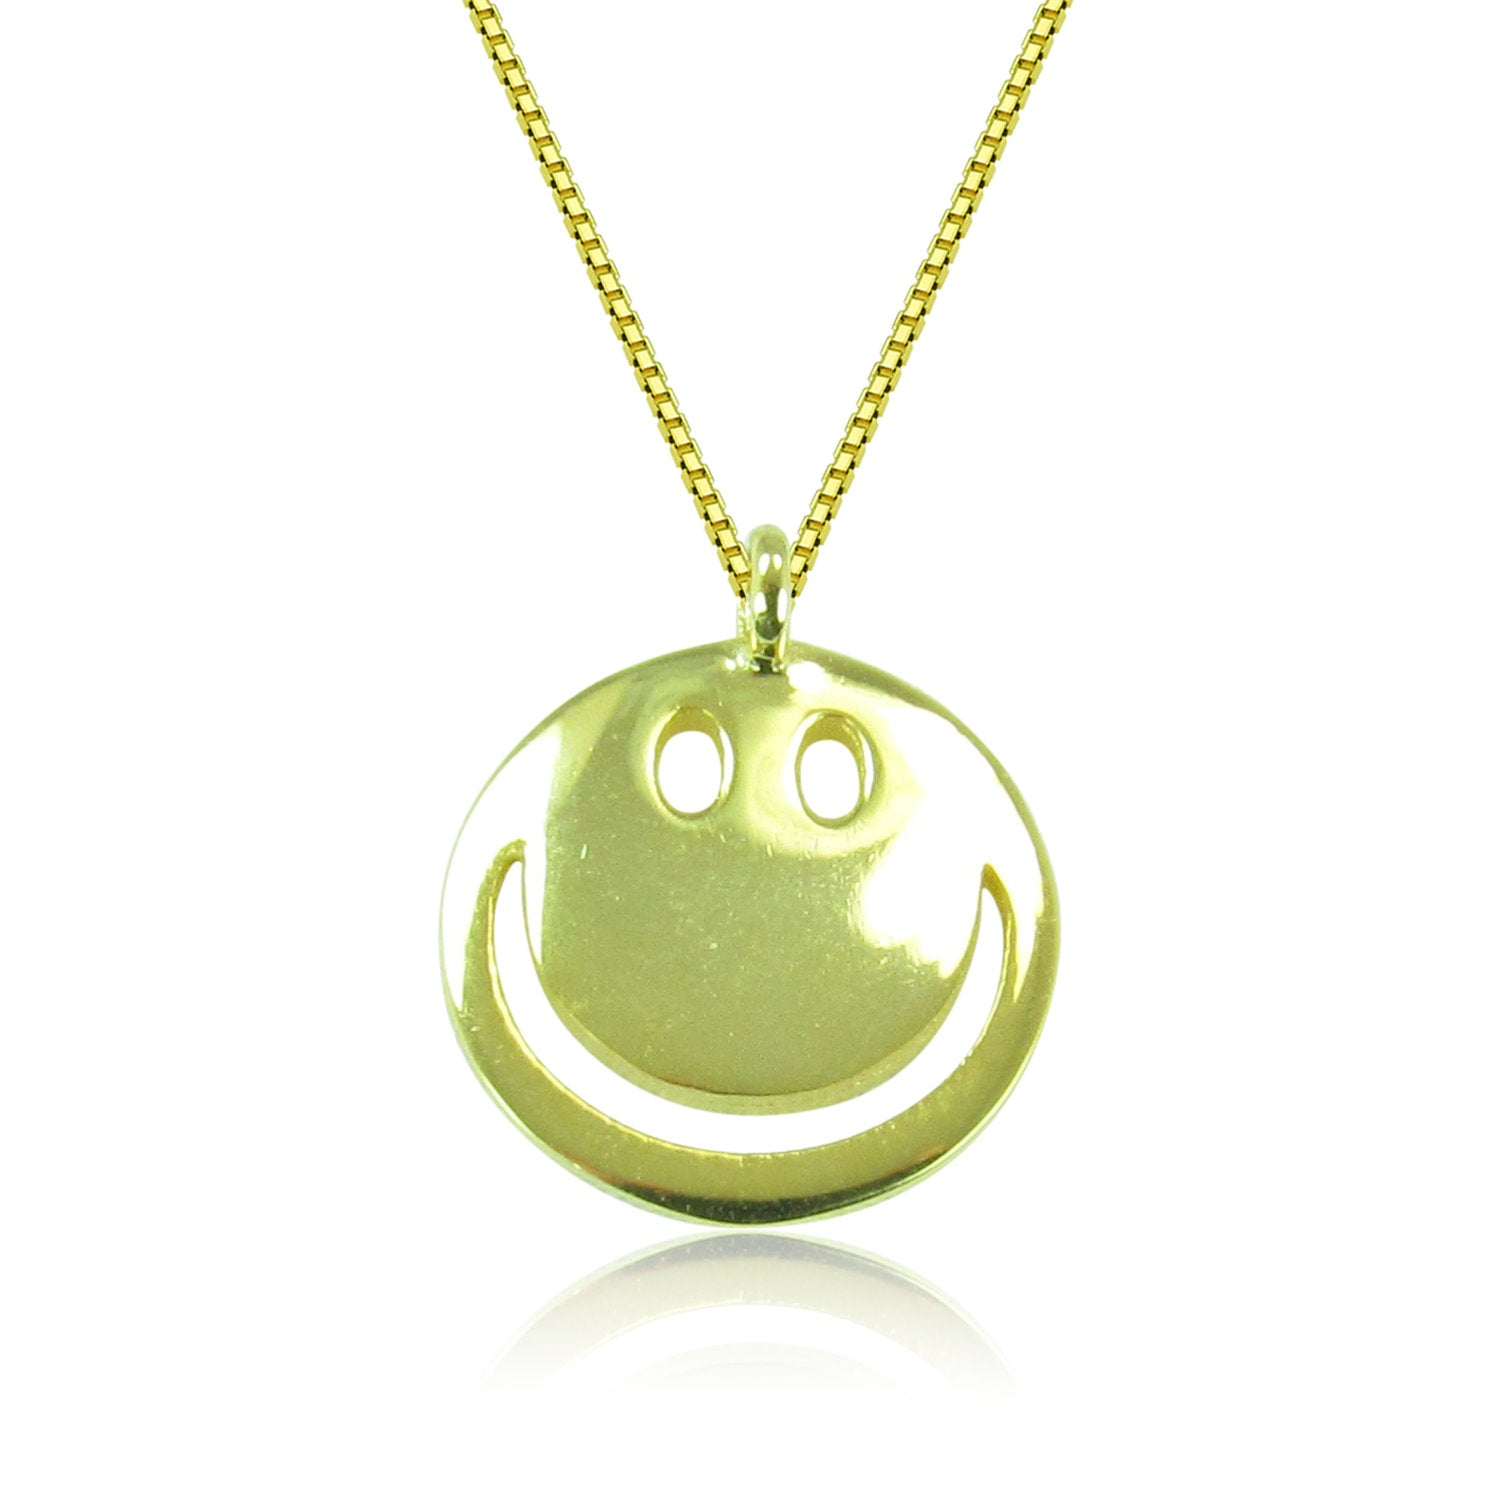 HAPPY FACE STERLING SILVER NECKLACE